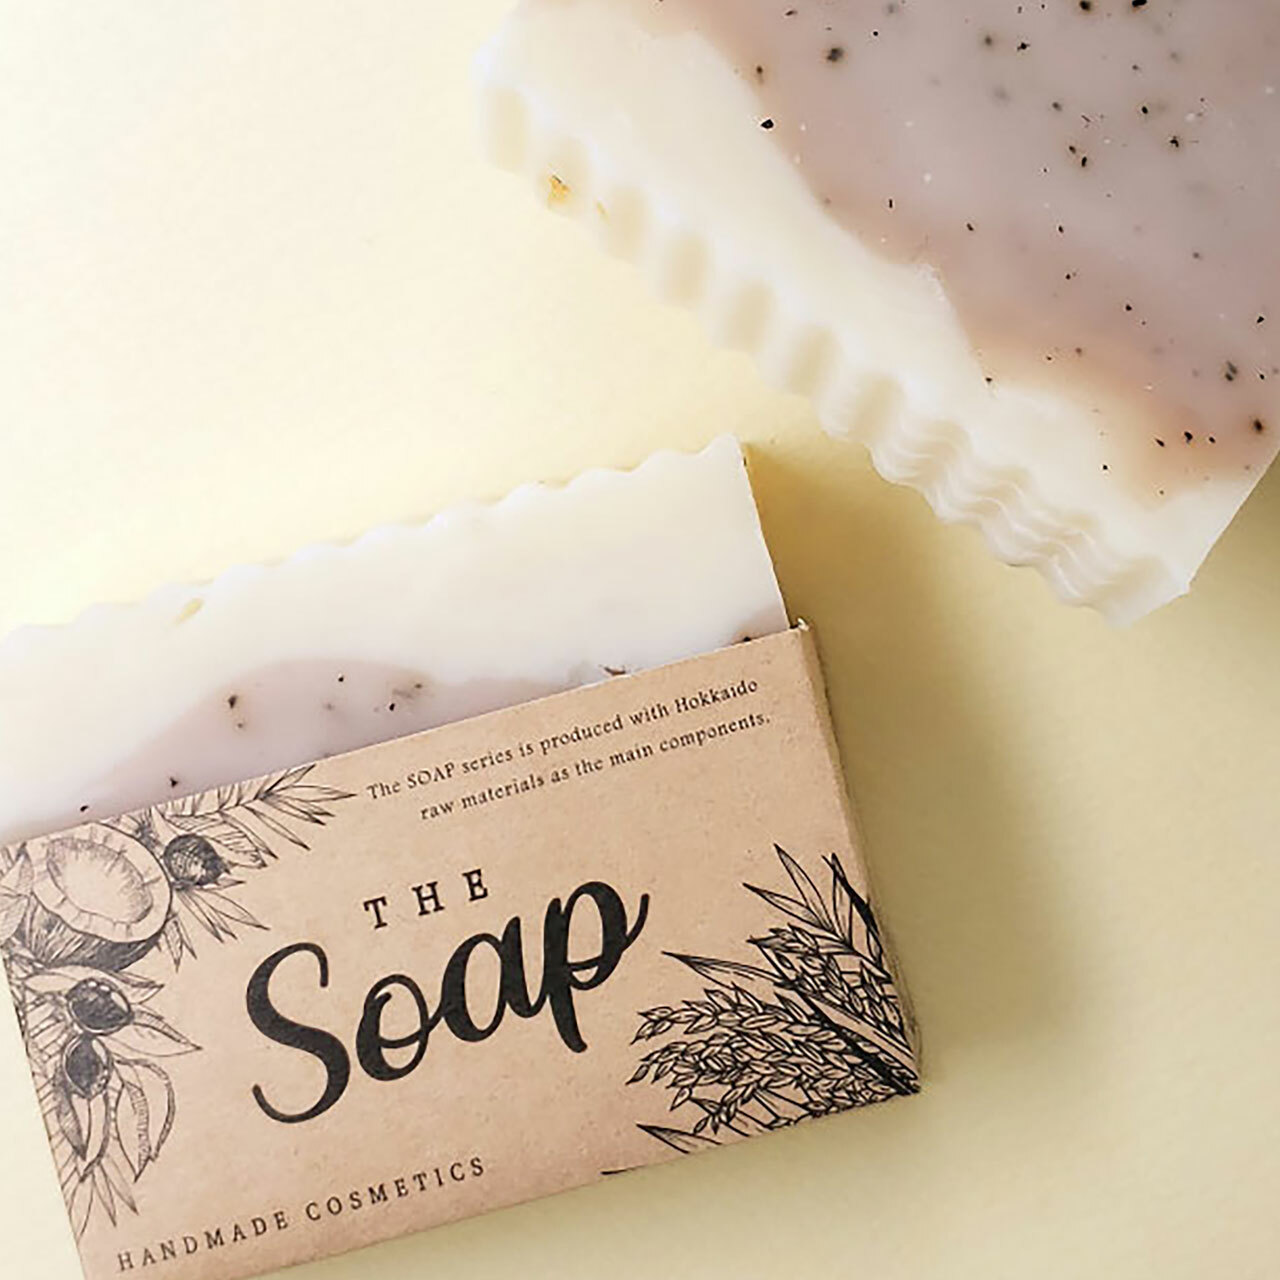 THE Soap(紅茶)